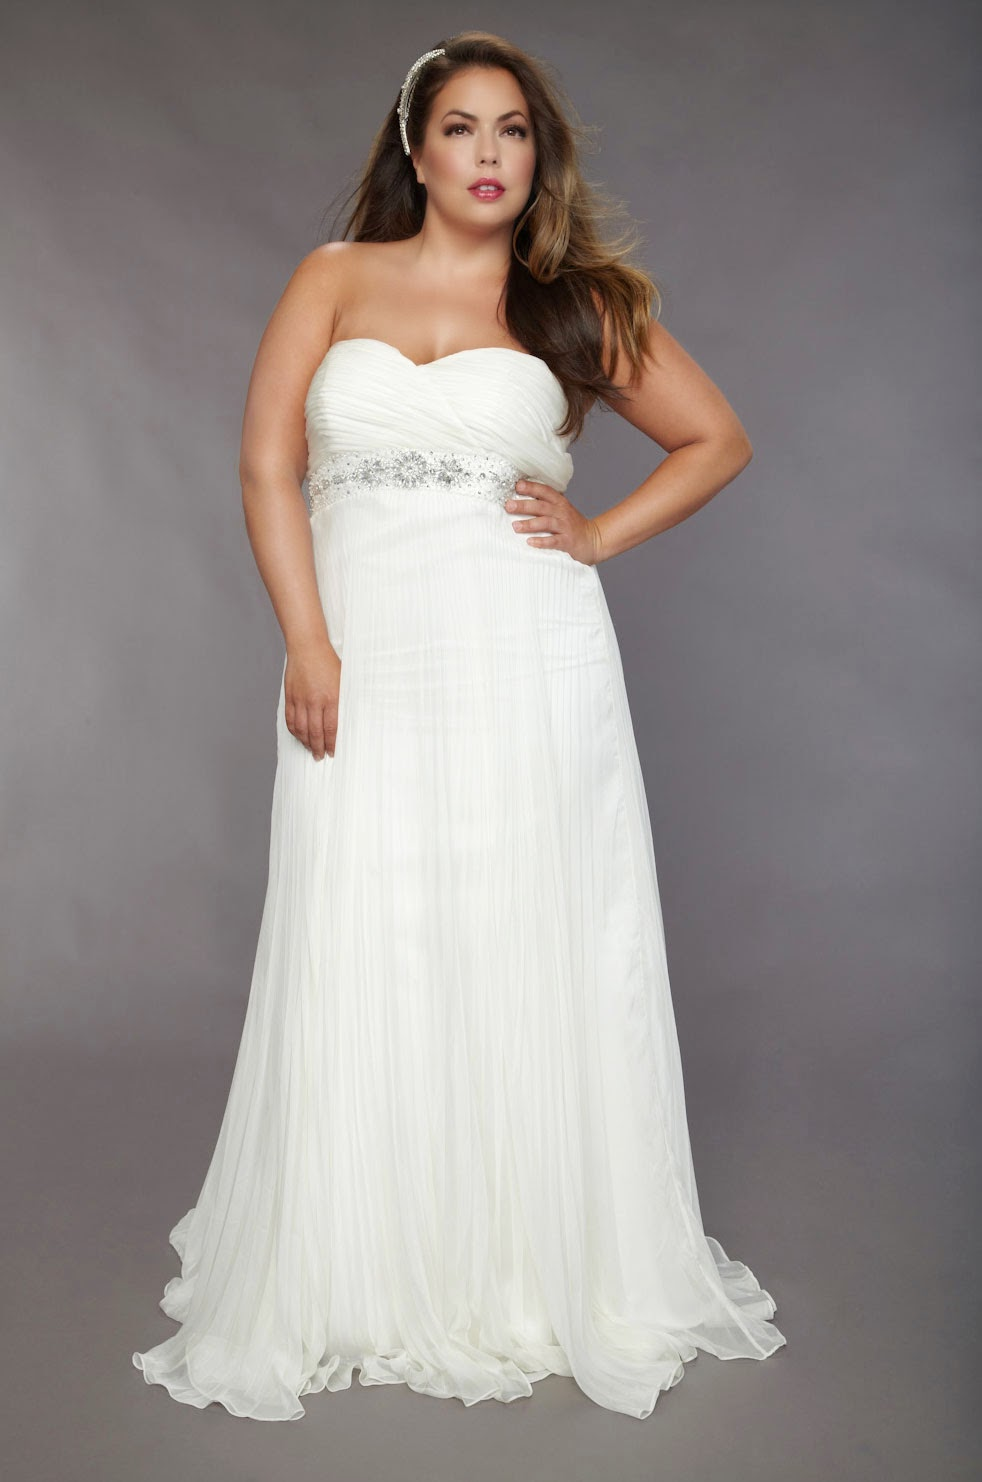 Plus Size Wedding Dresses For Older Brides Second Marriage Ideas